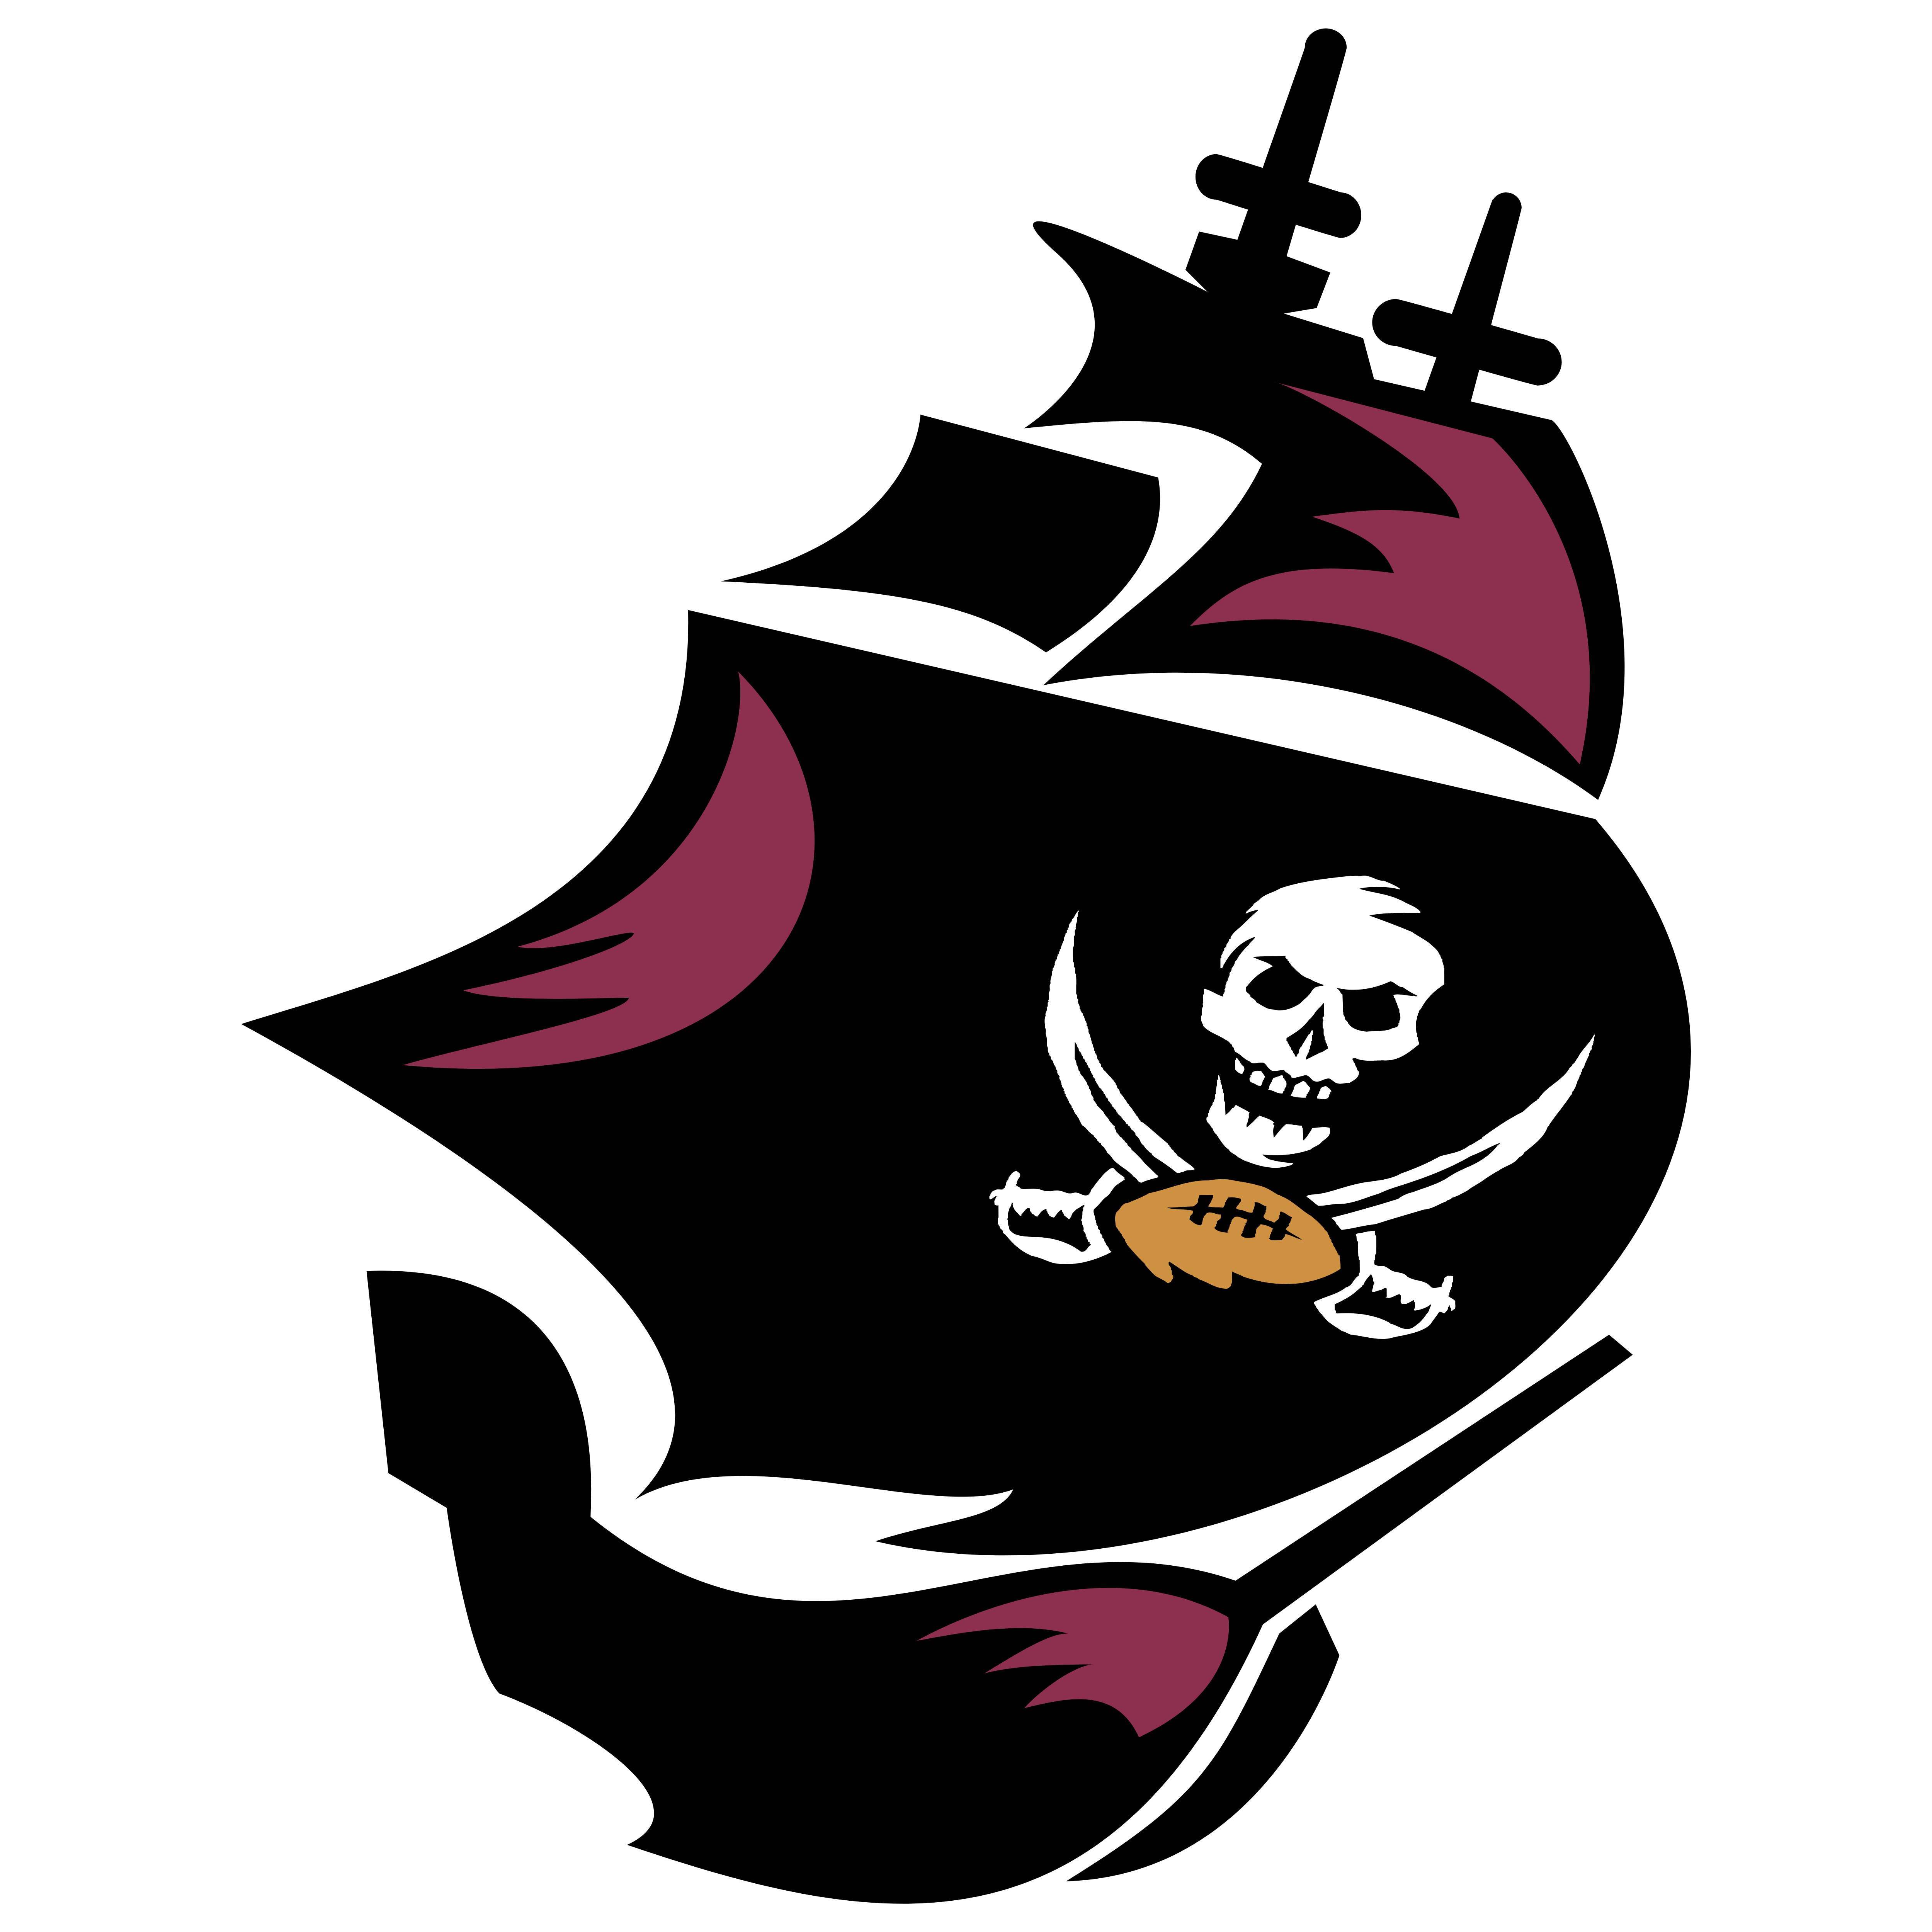 tampa bay buccaneers logos download logos download